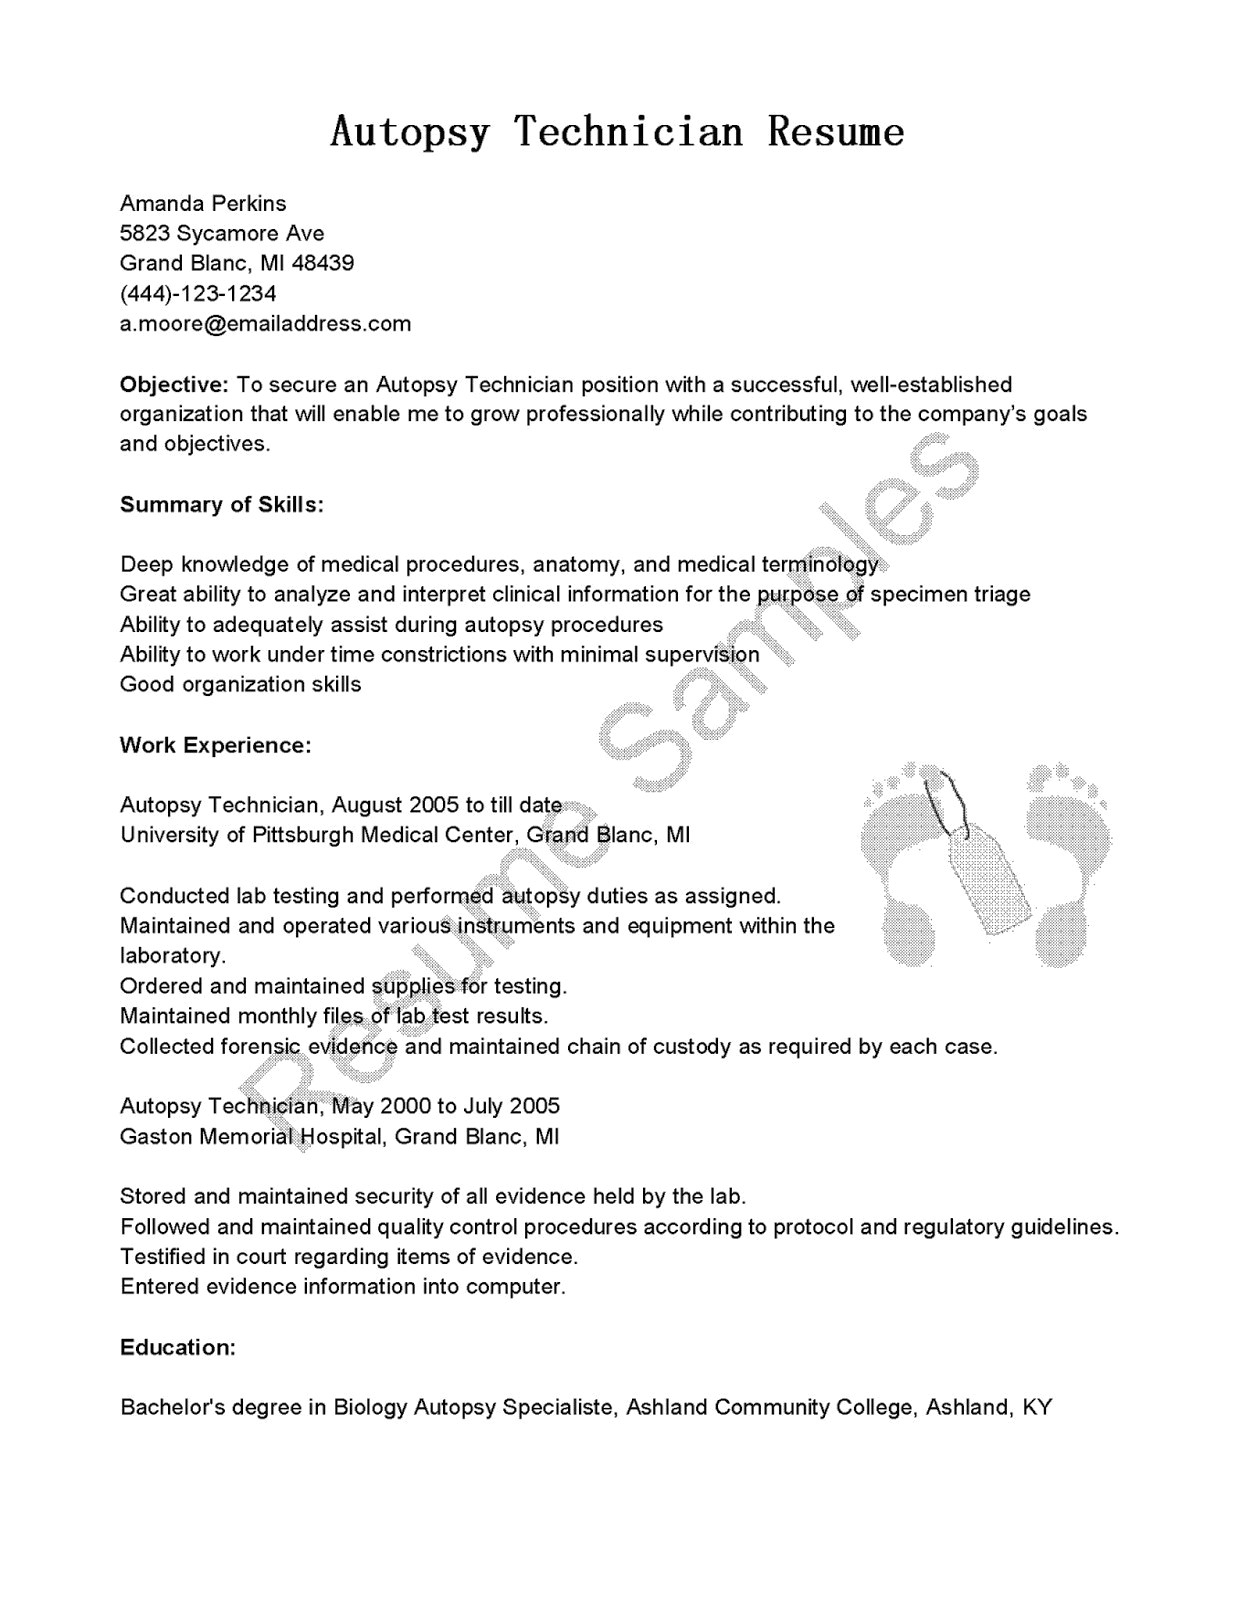 Free Resume Template - 46 New Best Free Resume Templates